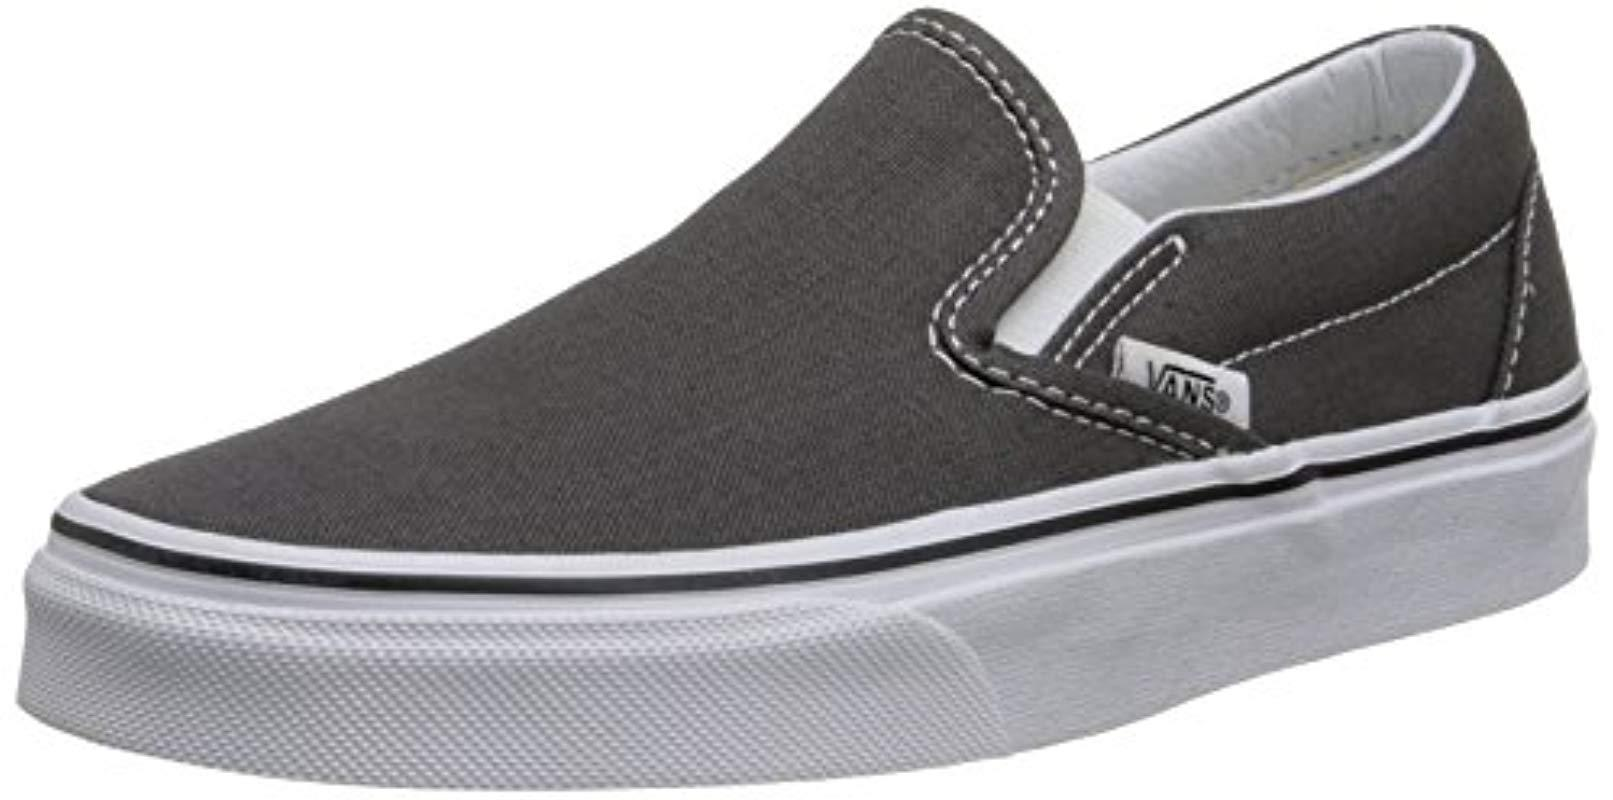 532a8888555e00 Vans Unisex Adults  Classic Slip-on Trainers - Lyst